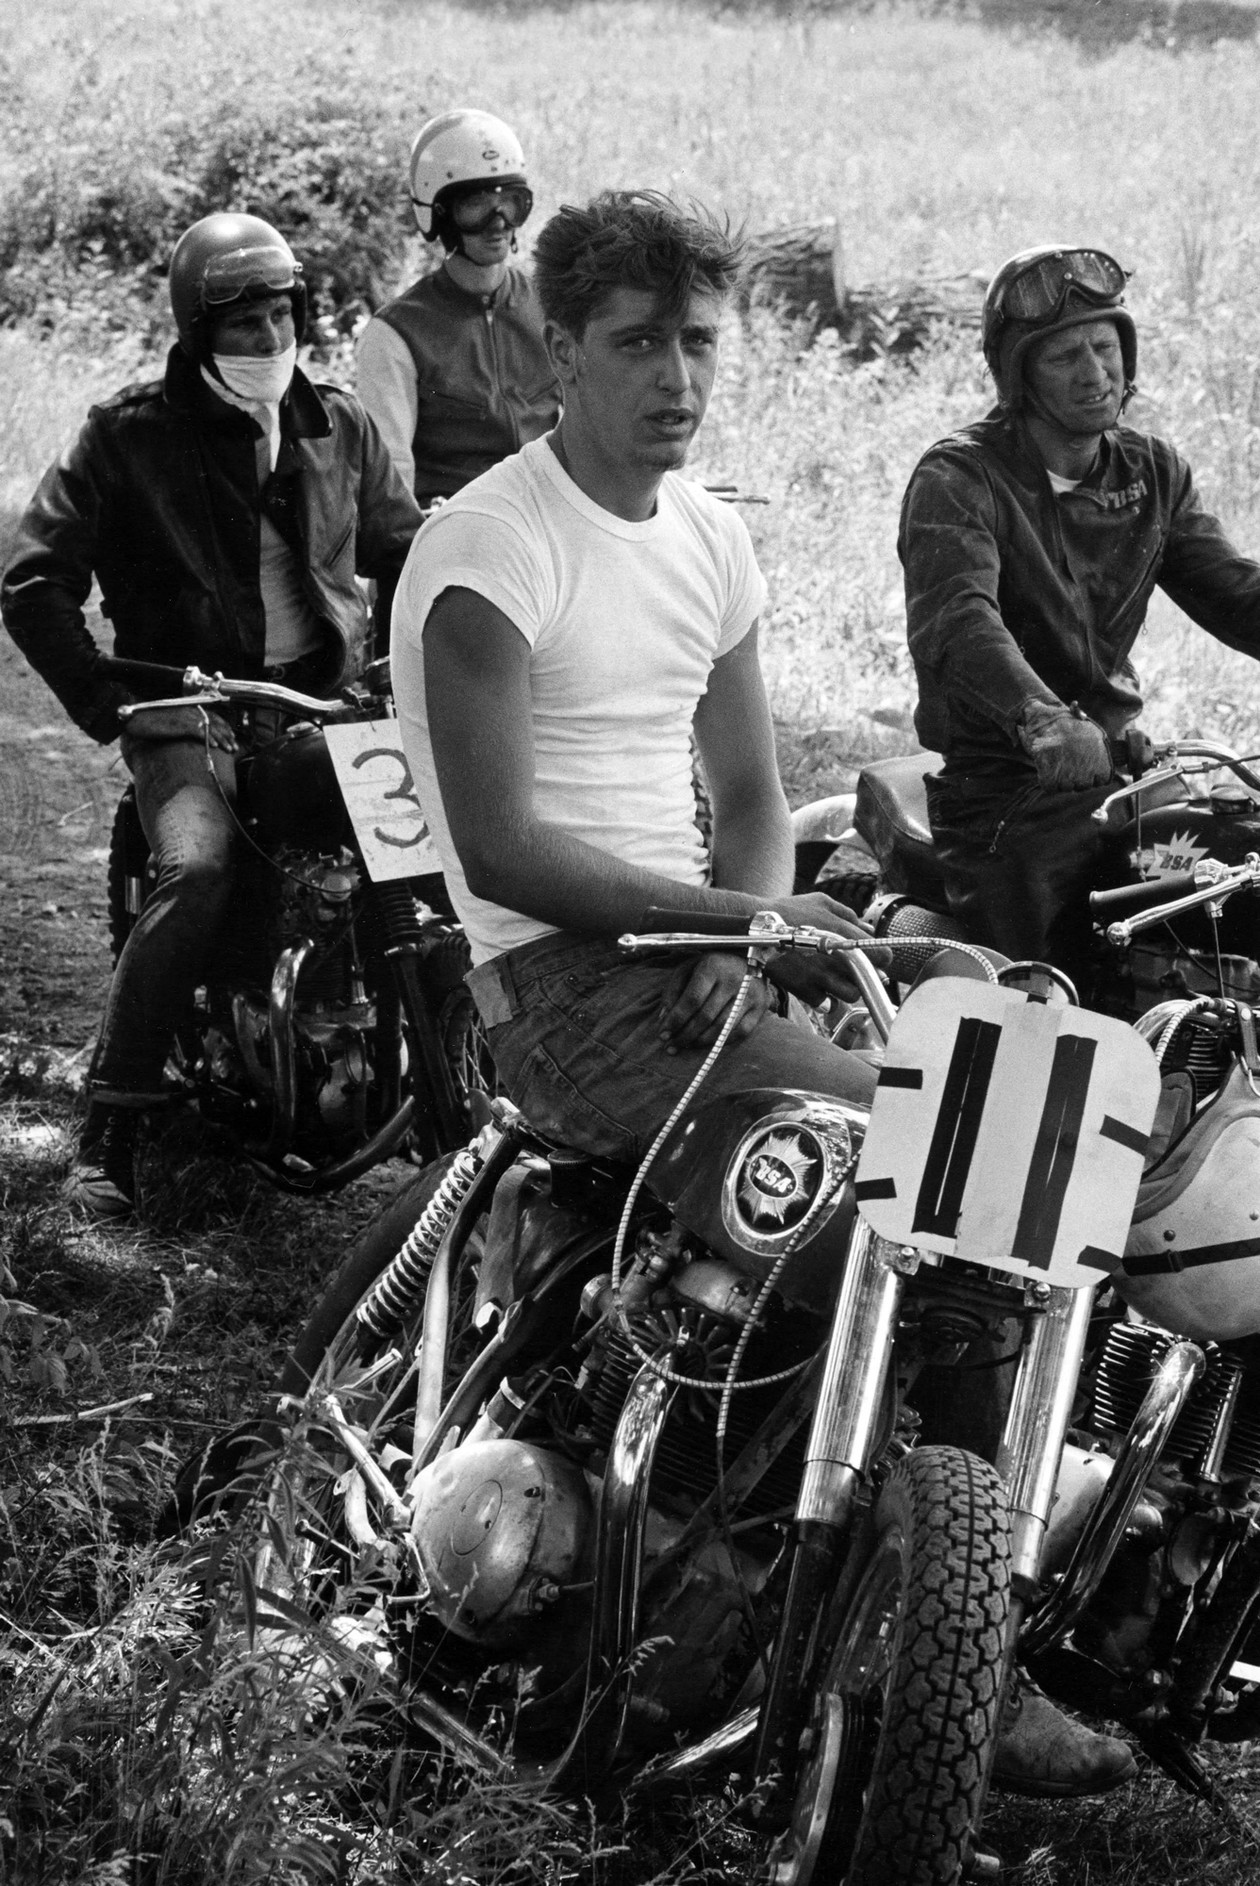 Racers, McHenry, Illinois (1963-1967) by Danny Lyon